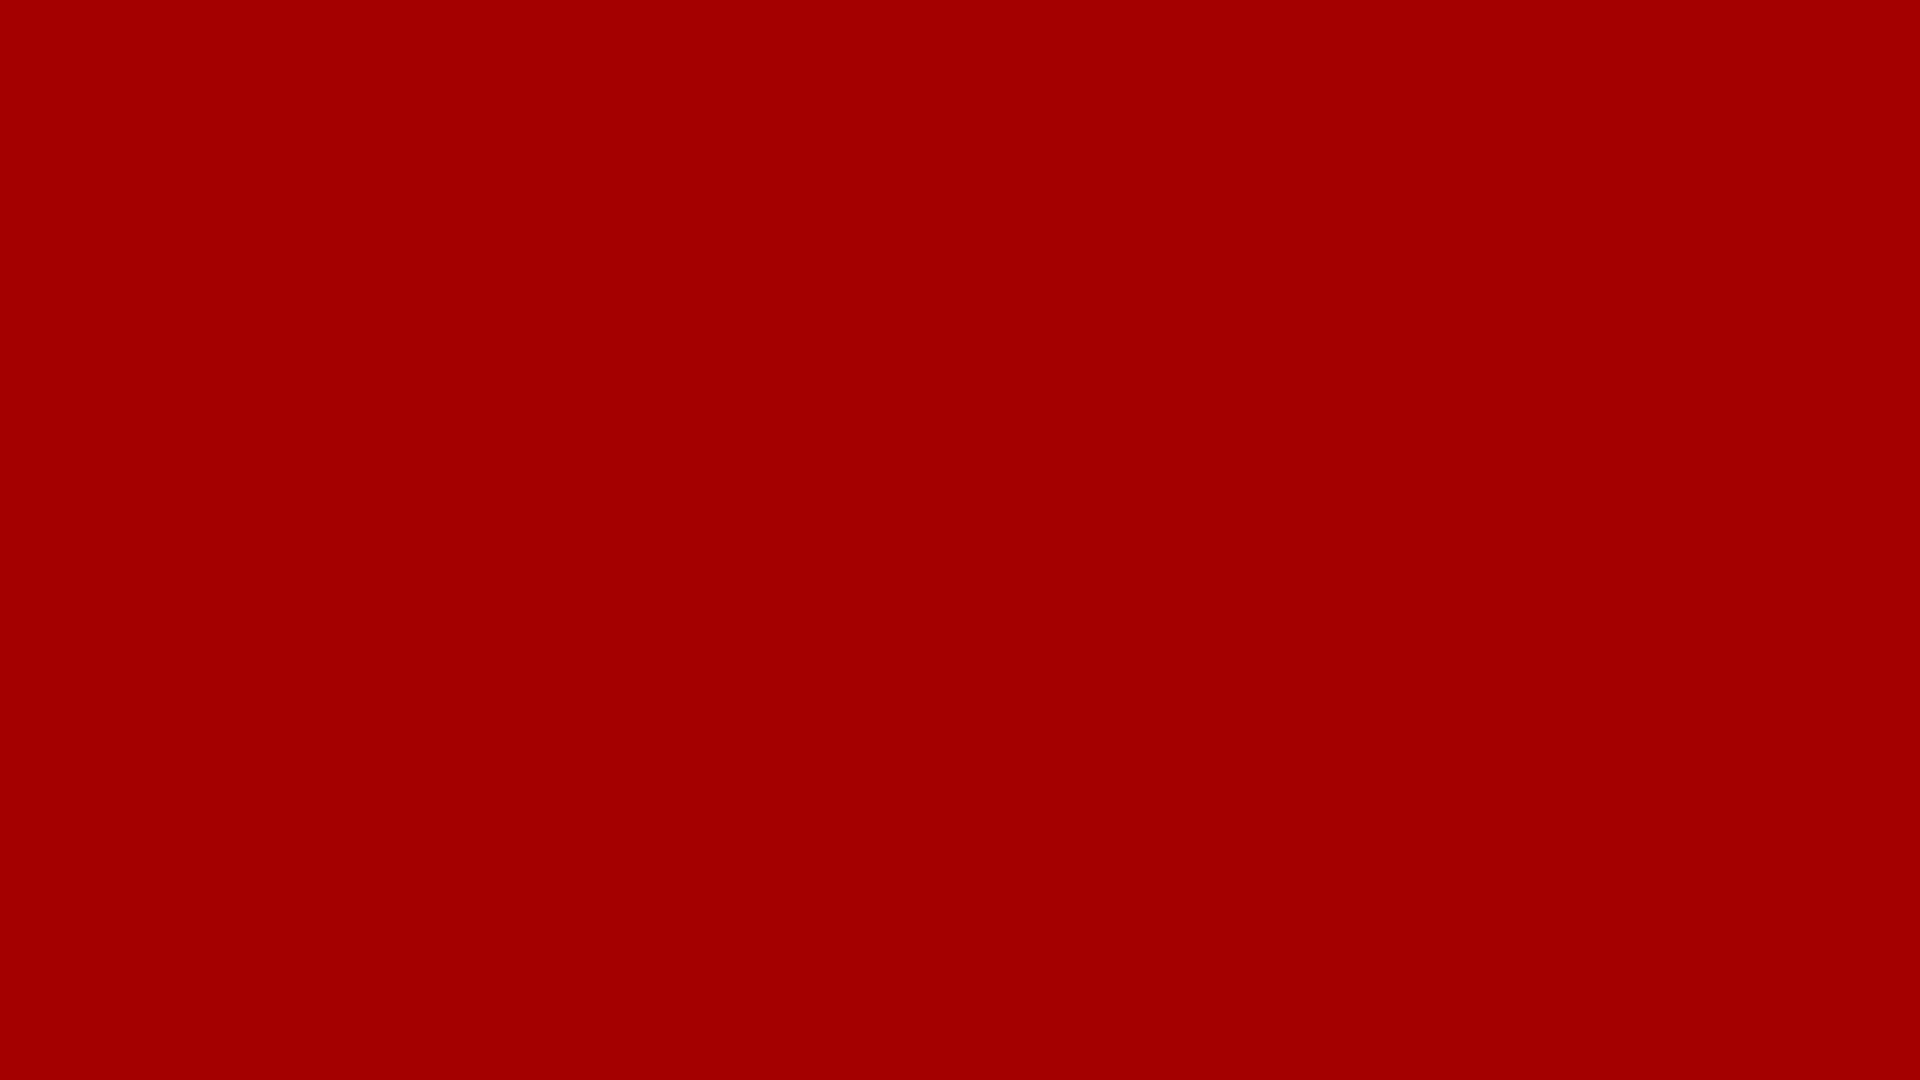 1920x1080 Dark Candy Apple Red Solid Color Background